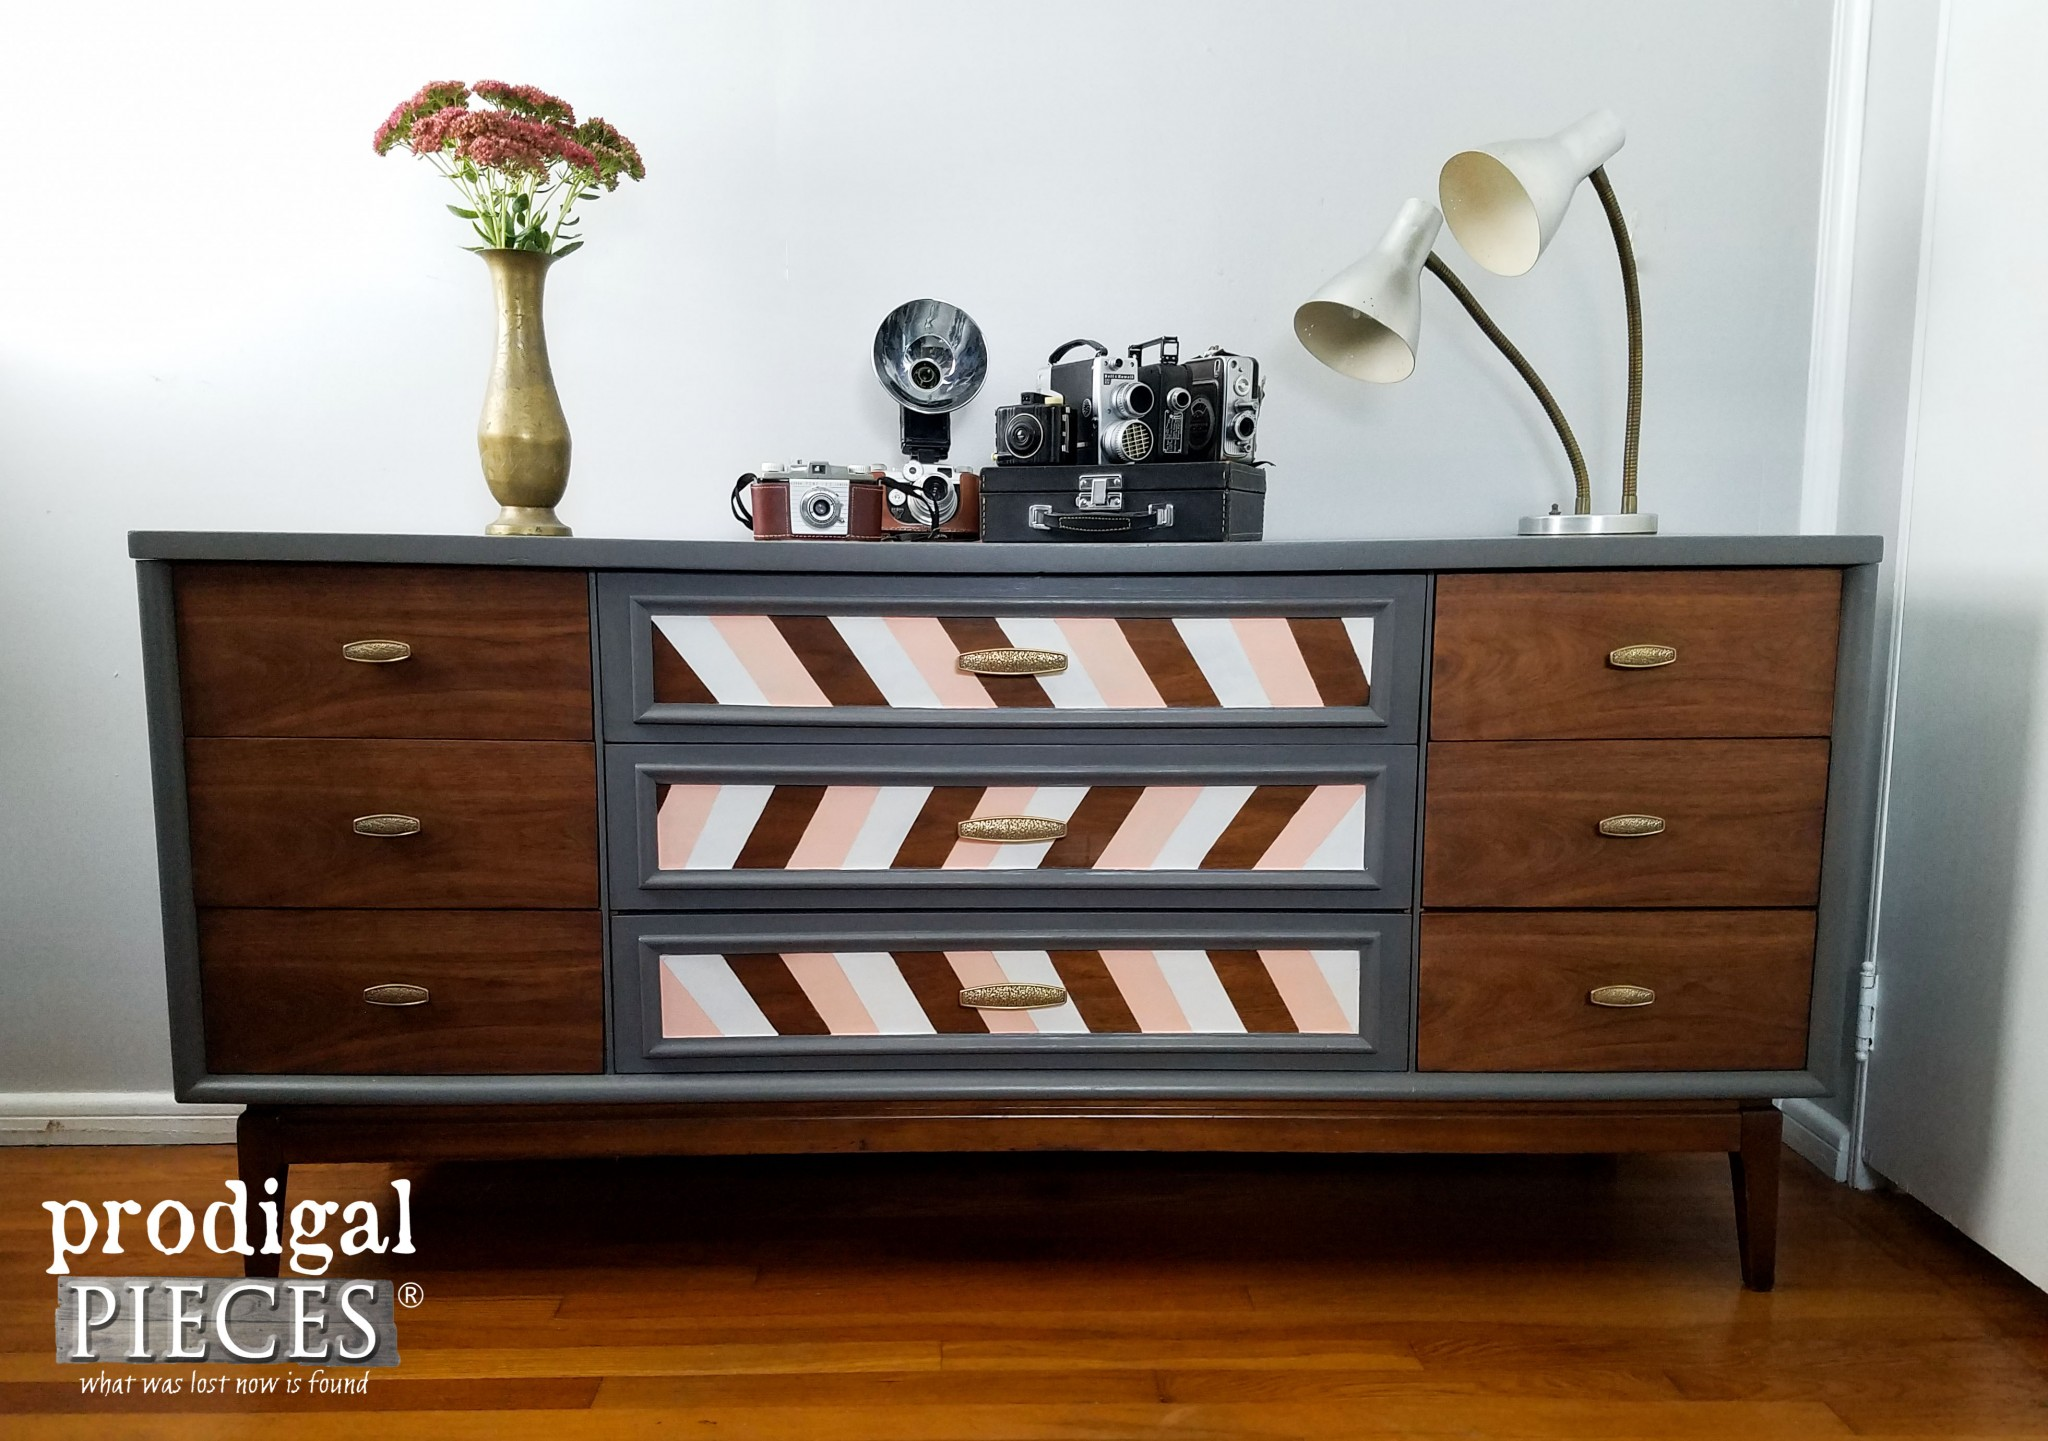 Mid Century Modern Dresser with Modern Chic Makeover by Prodigal Pieces | www.prodigalpieces.com